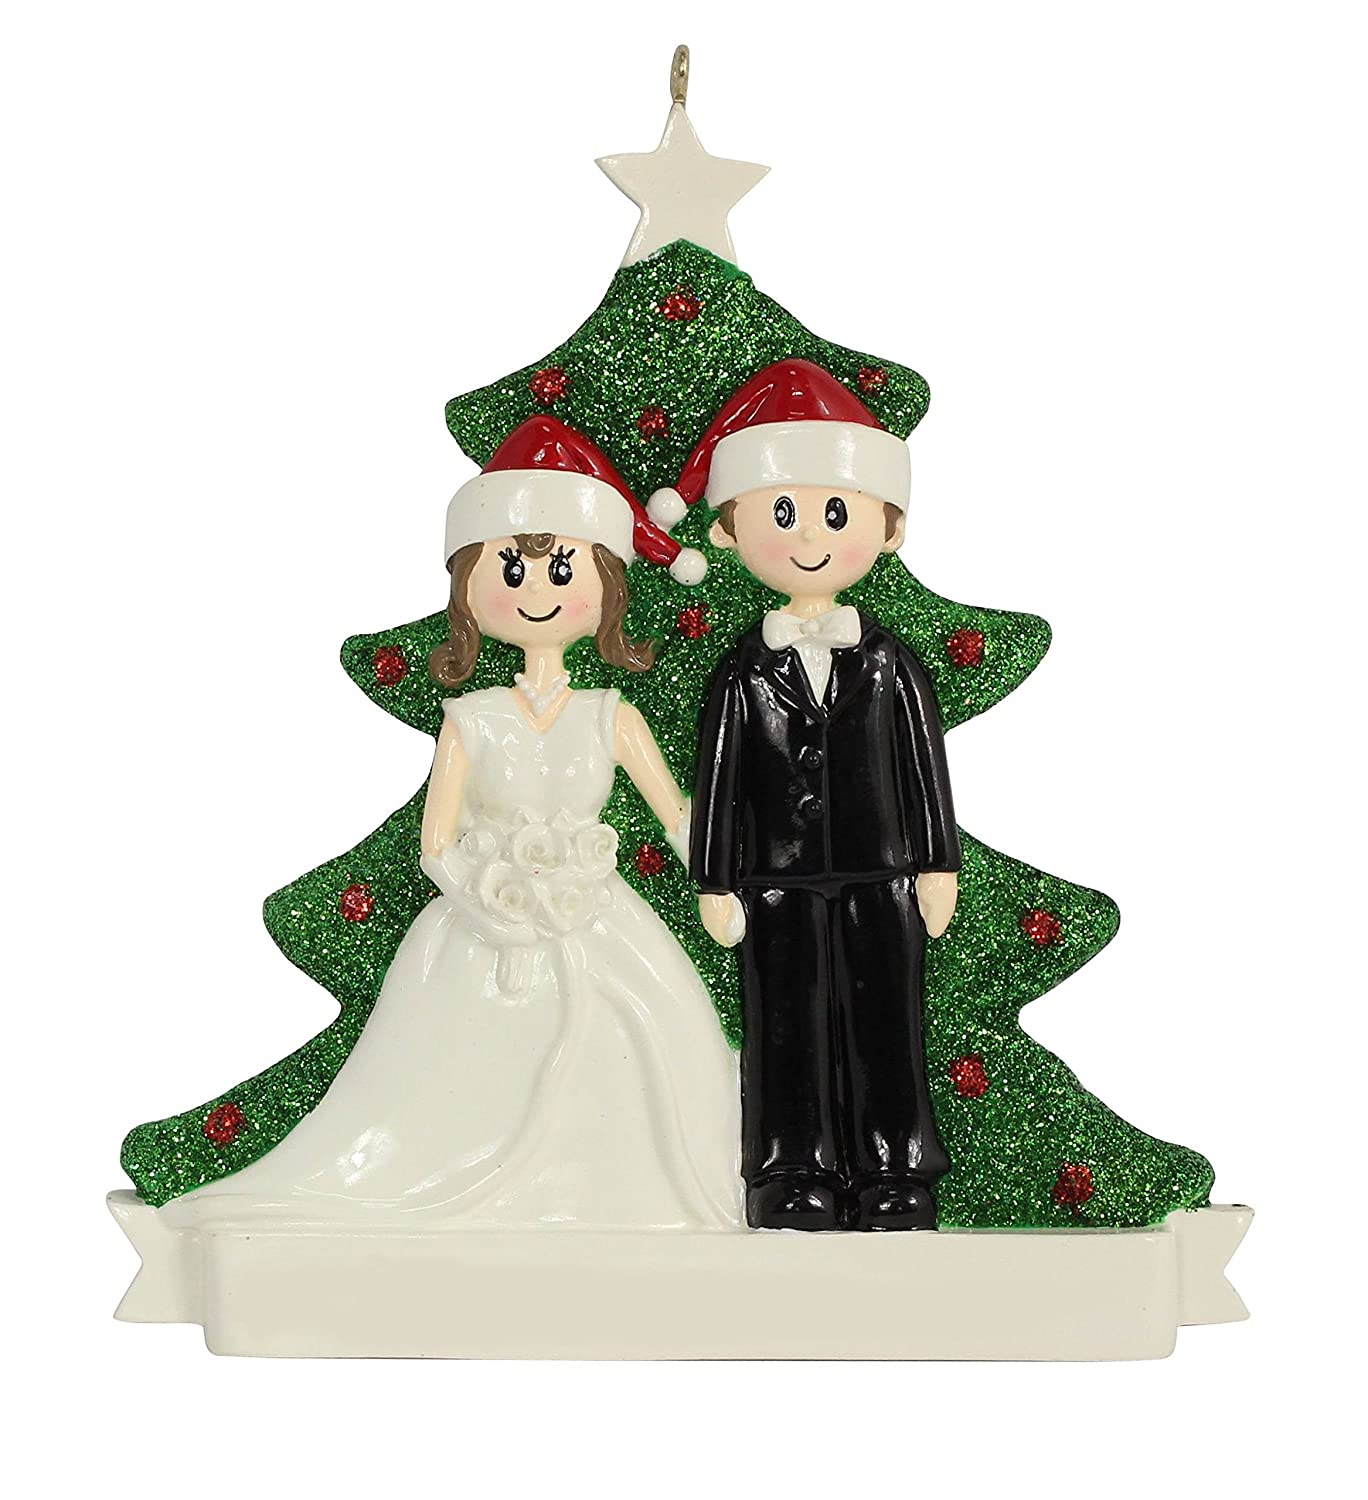 Amazon.com: Wedding Couple Ornament: Home & Kitchen